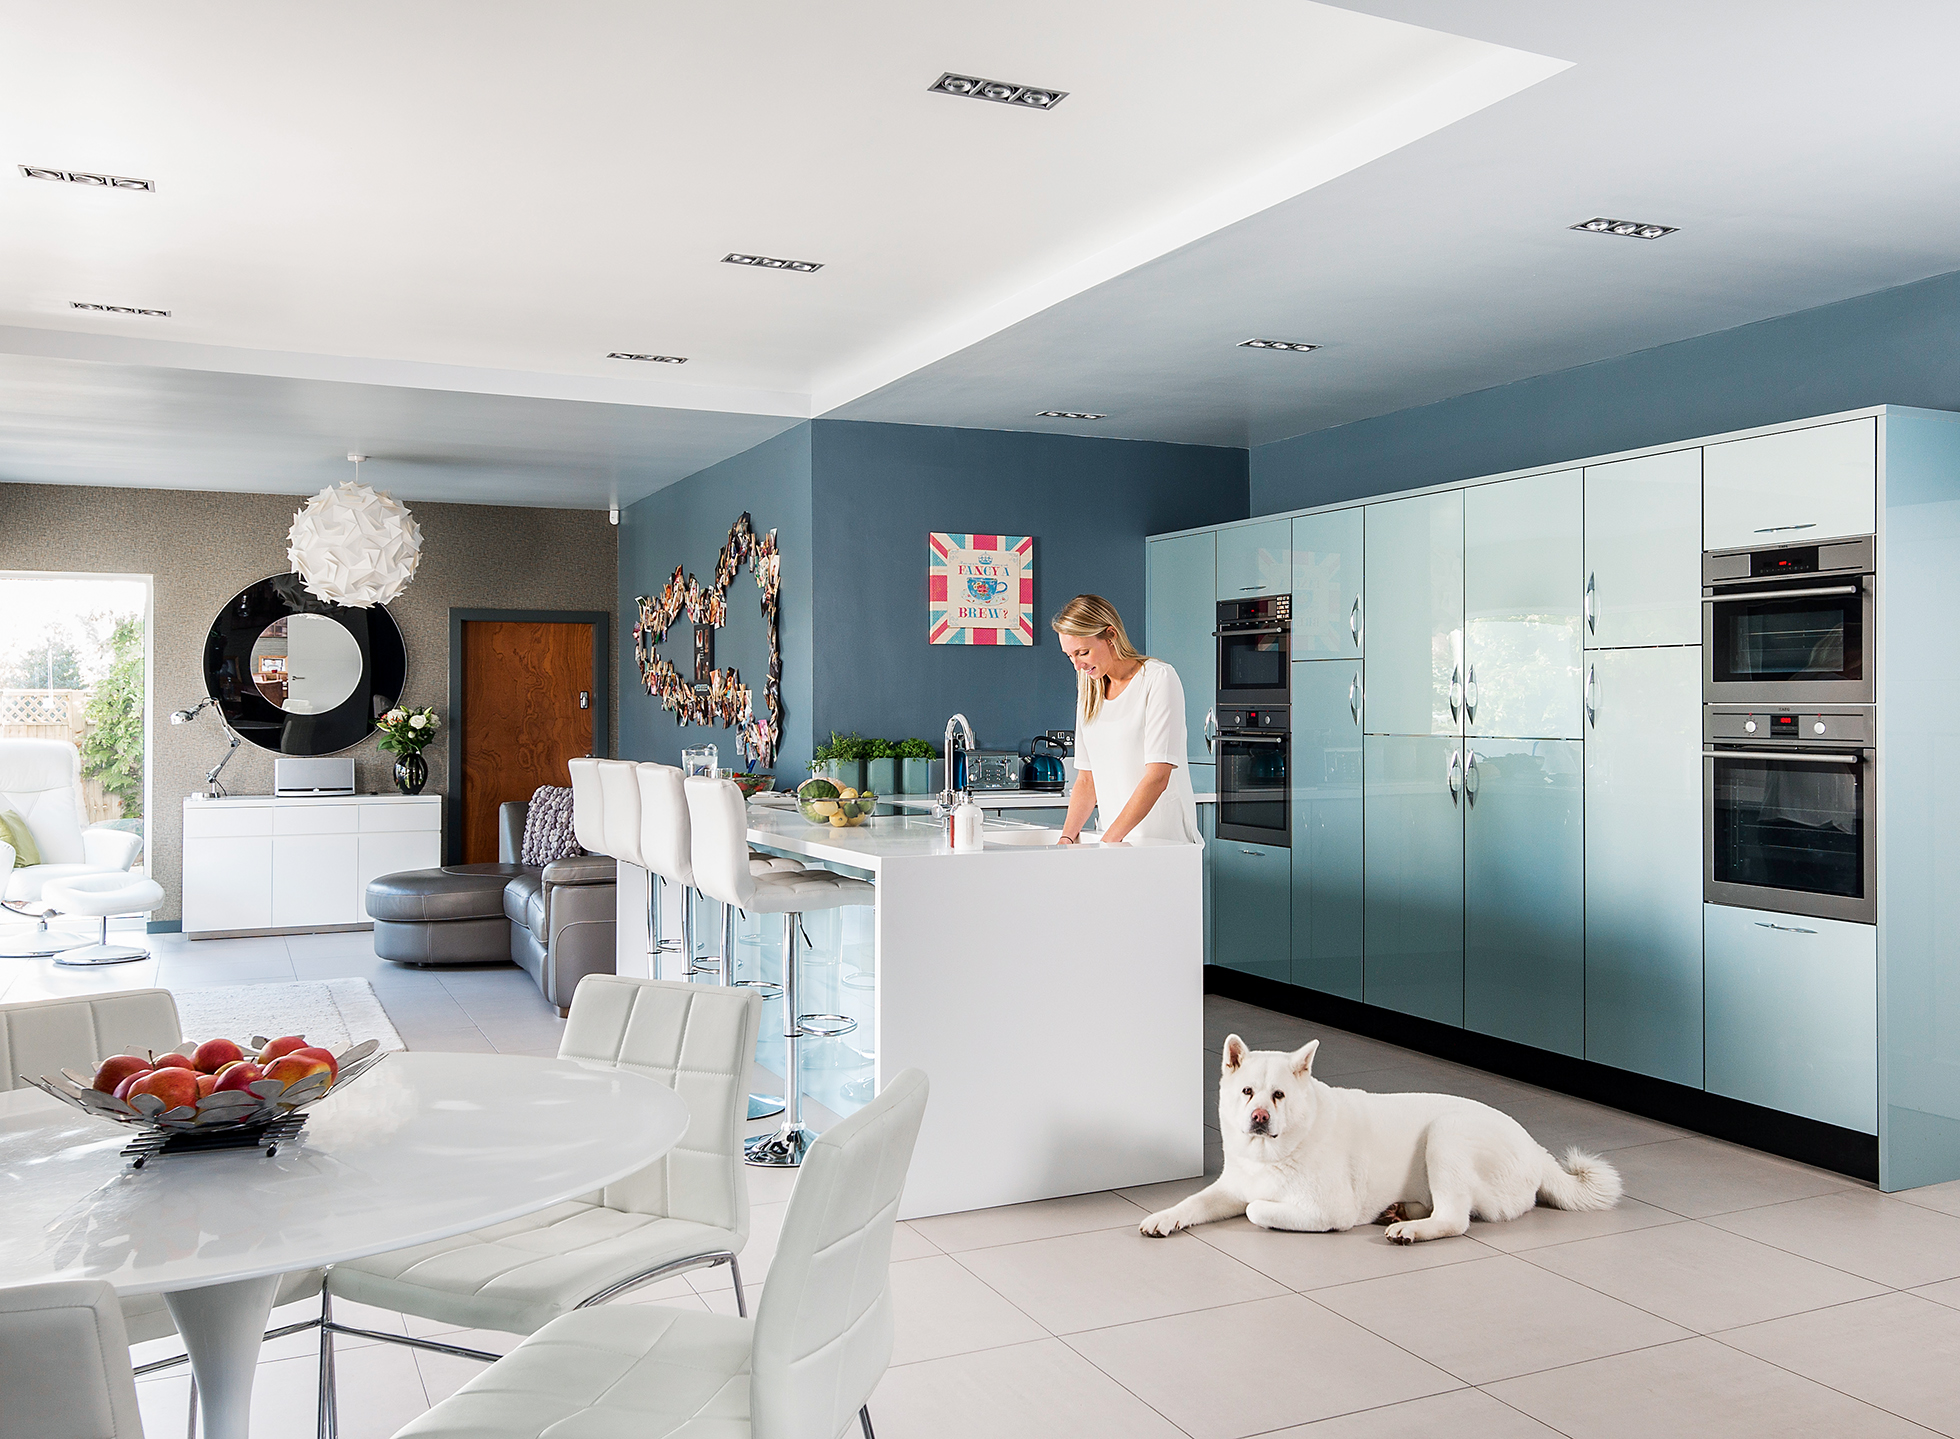 Contemporary kitchen extension for entertaining real homes